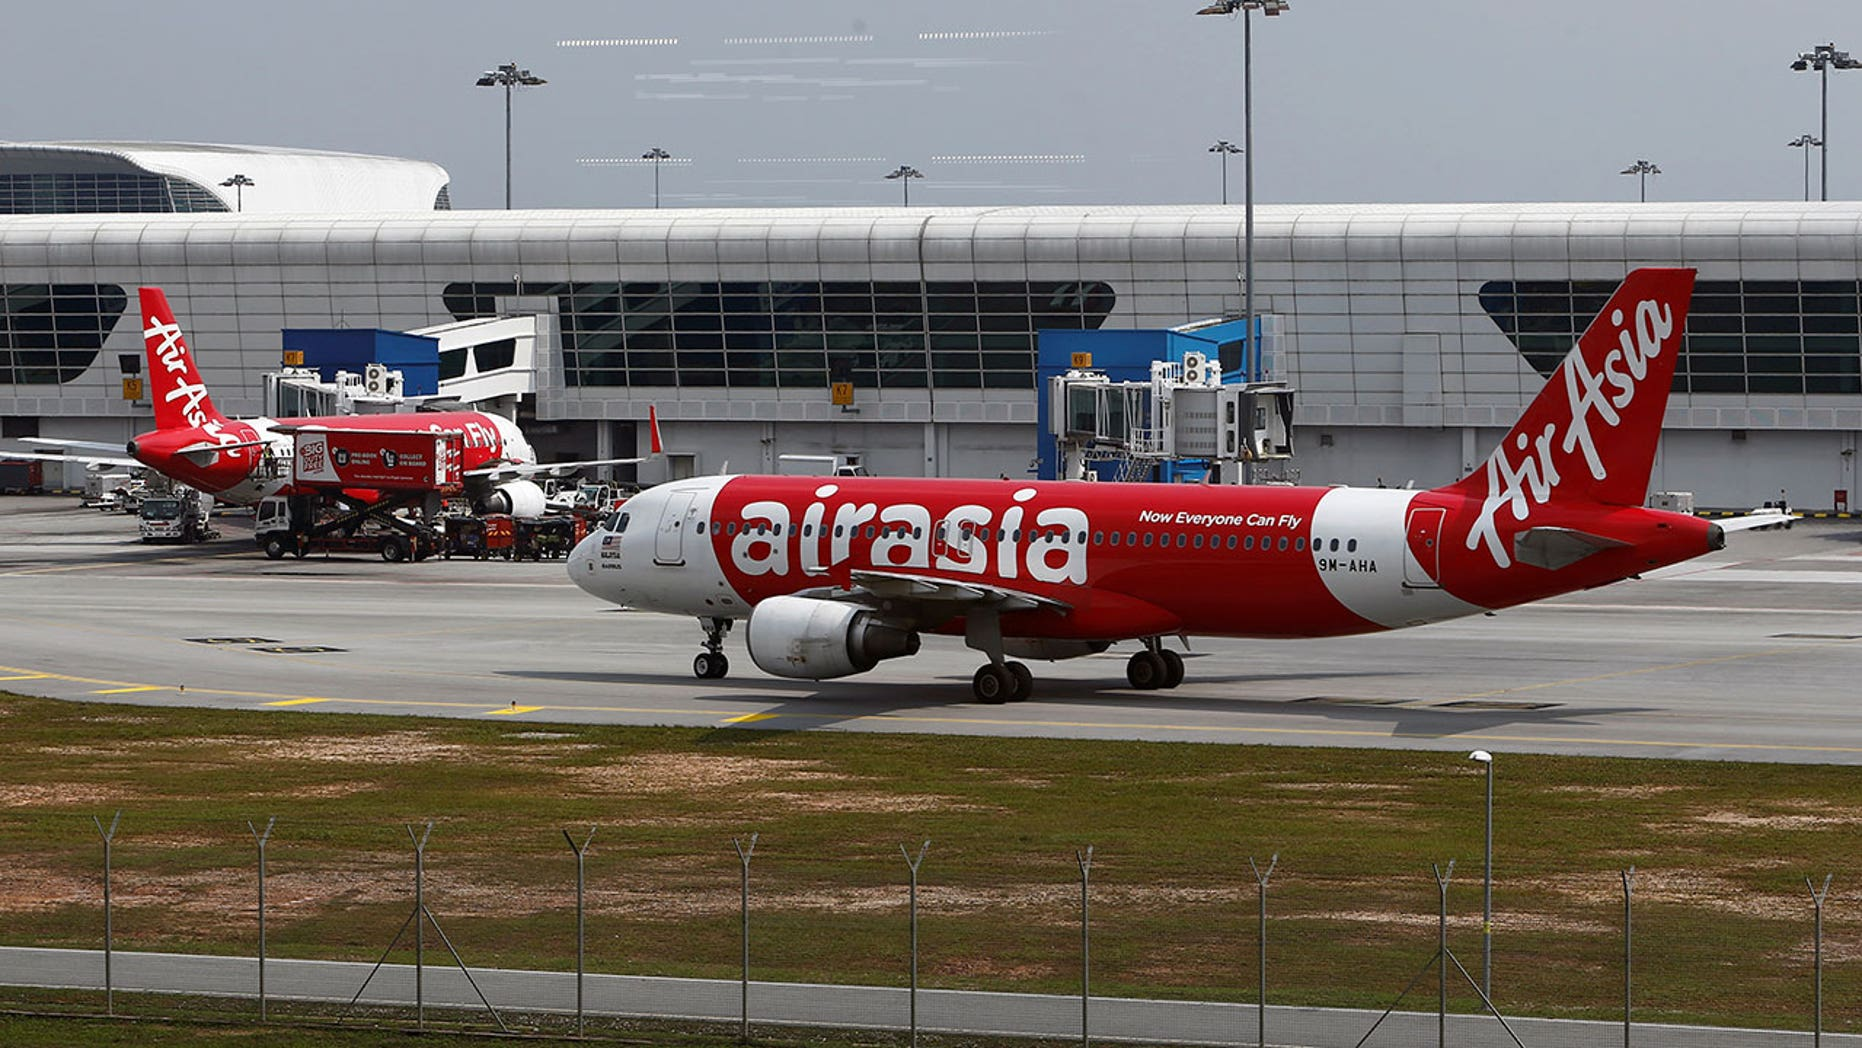 An AirAsia staffer was reportedly traveling as a passenger on AirAsia flight AK416 out of Kuala Lumpur.